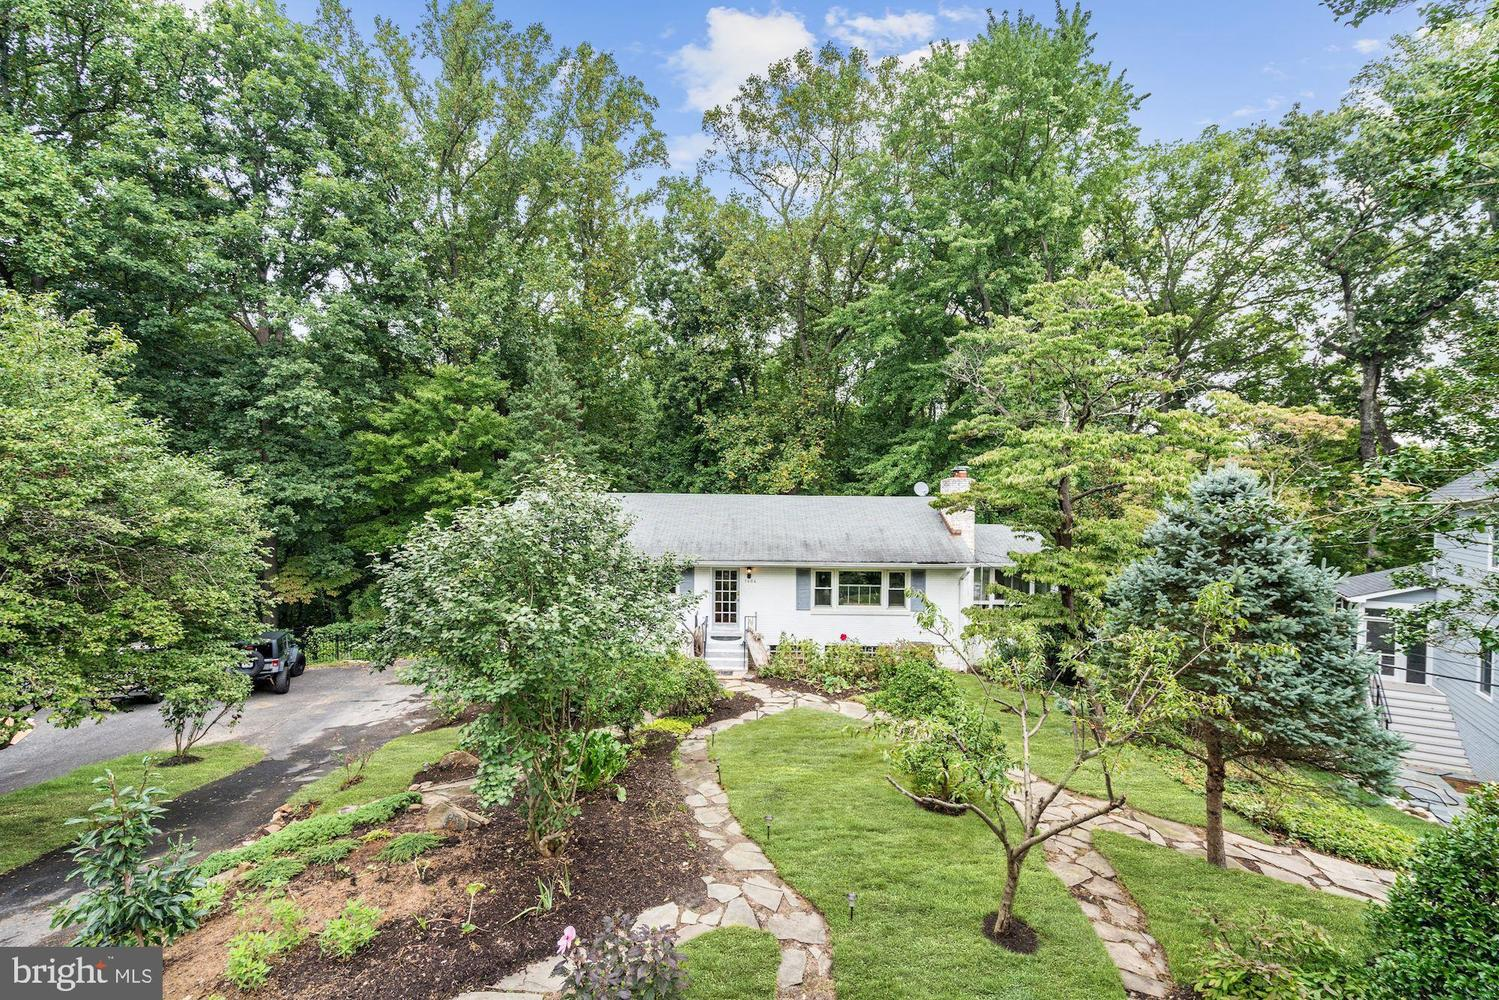 1464 1464-lot Waggaman Circle McLean, VA 22101